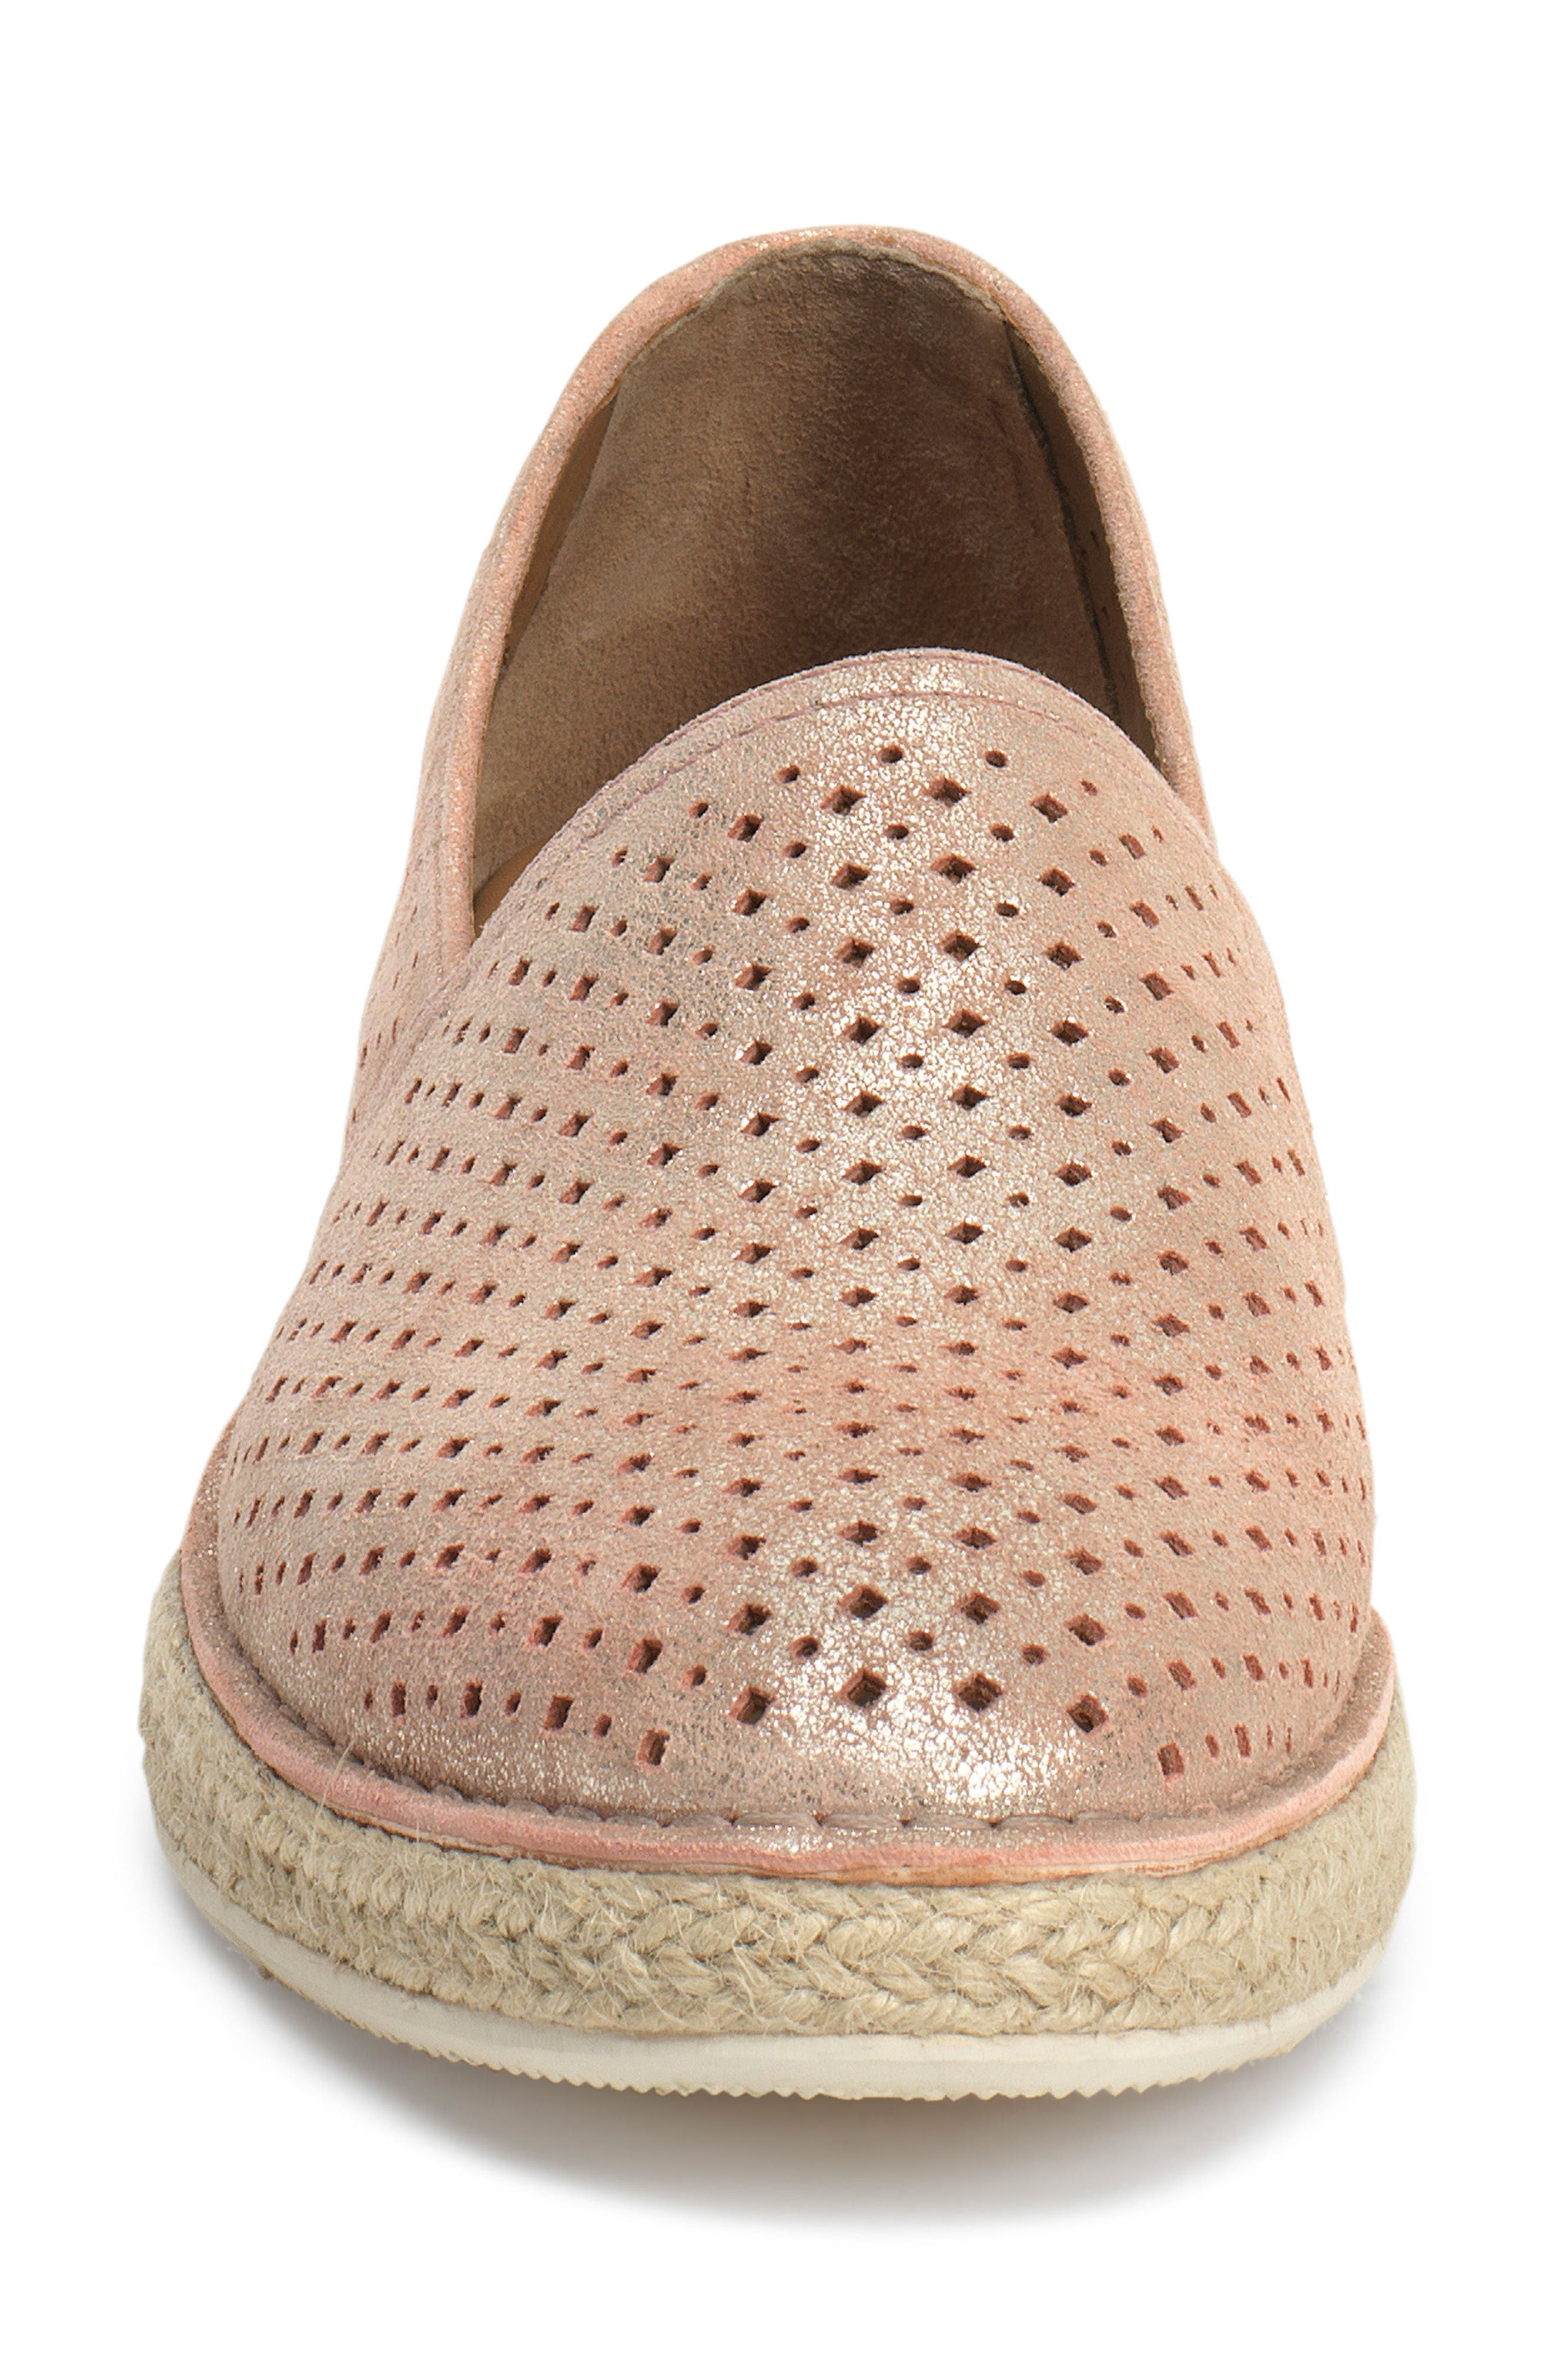 Paige Perforated Flat,                             Alternate thumbnail 4, color,                             BLUSH METALLIC SUEDE